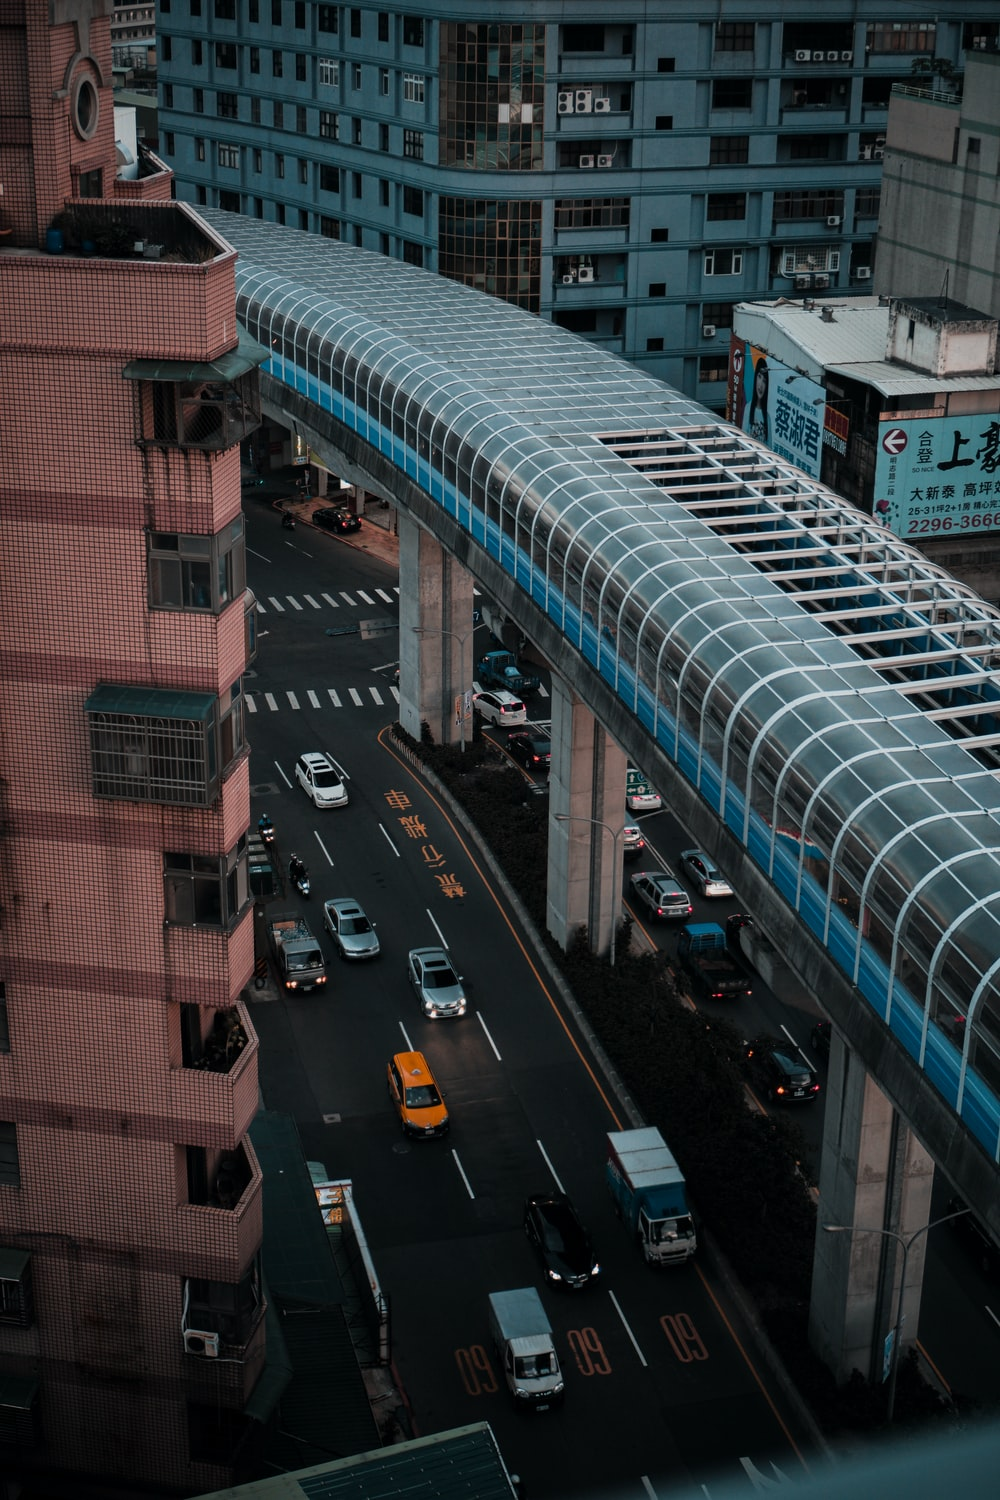 cars on road near building during daytime